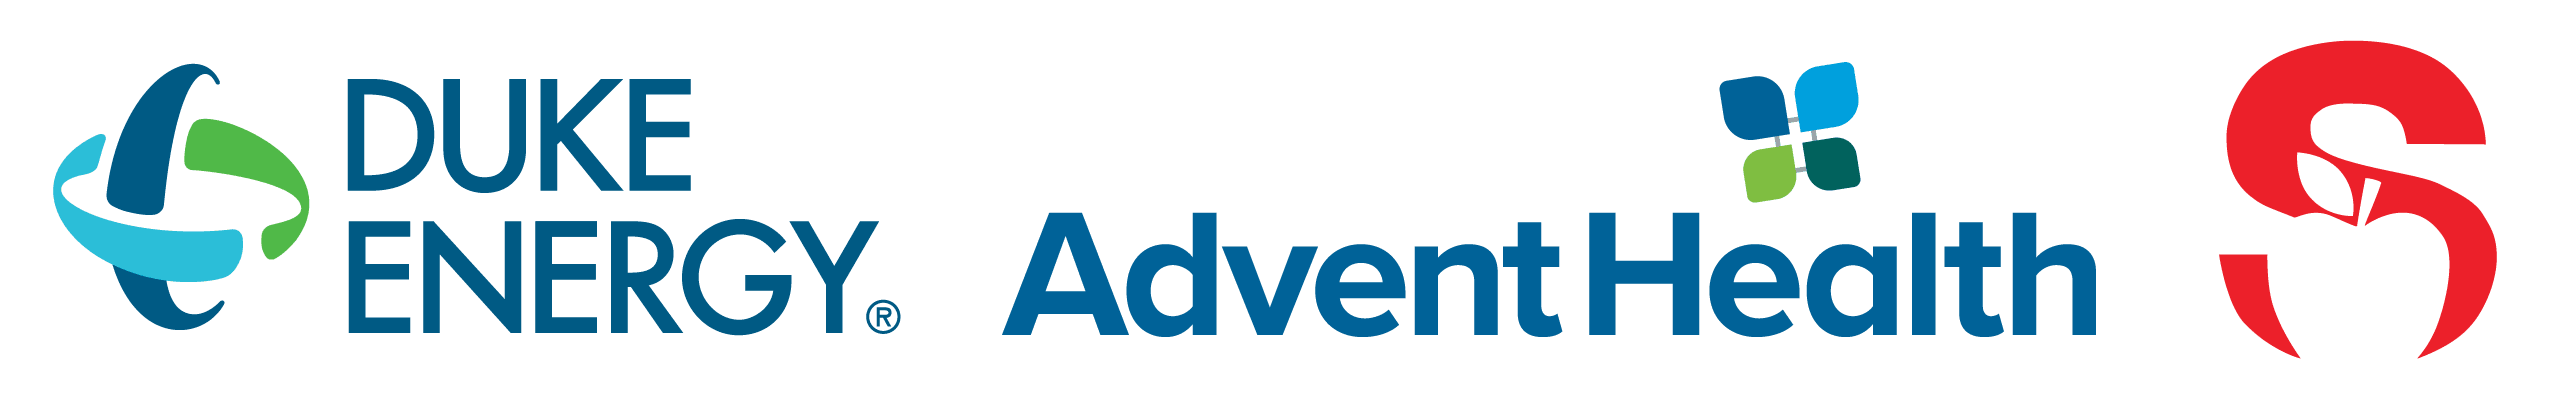 Duke Energy, Advent Health, SCPS Logos